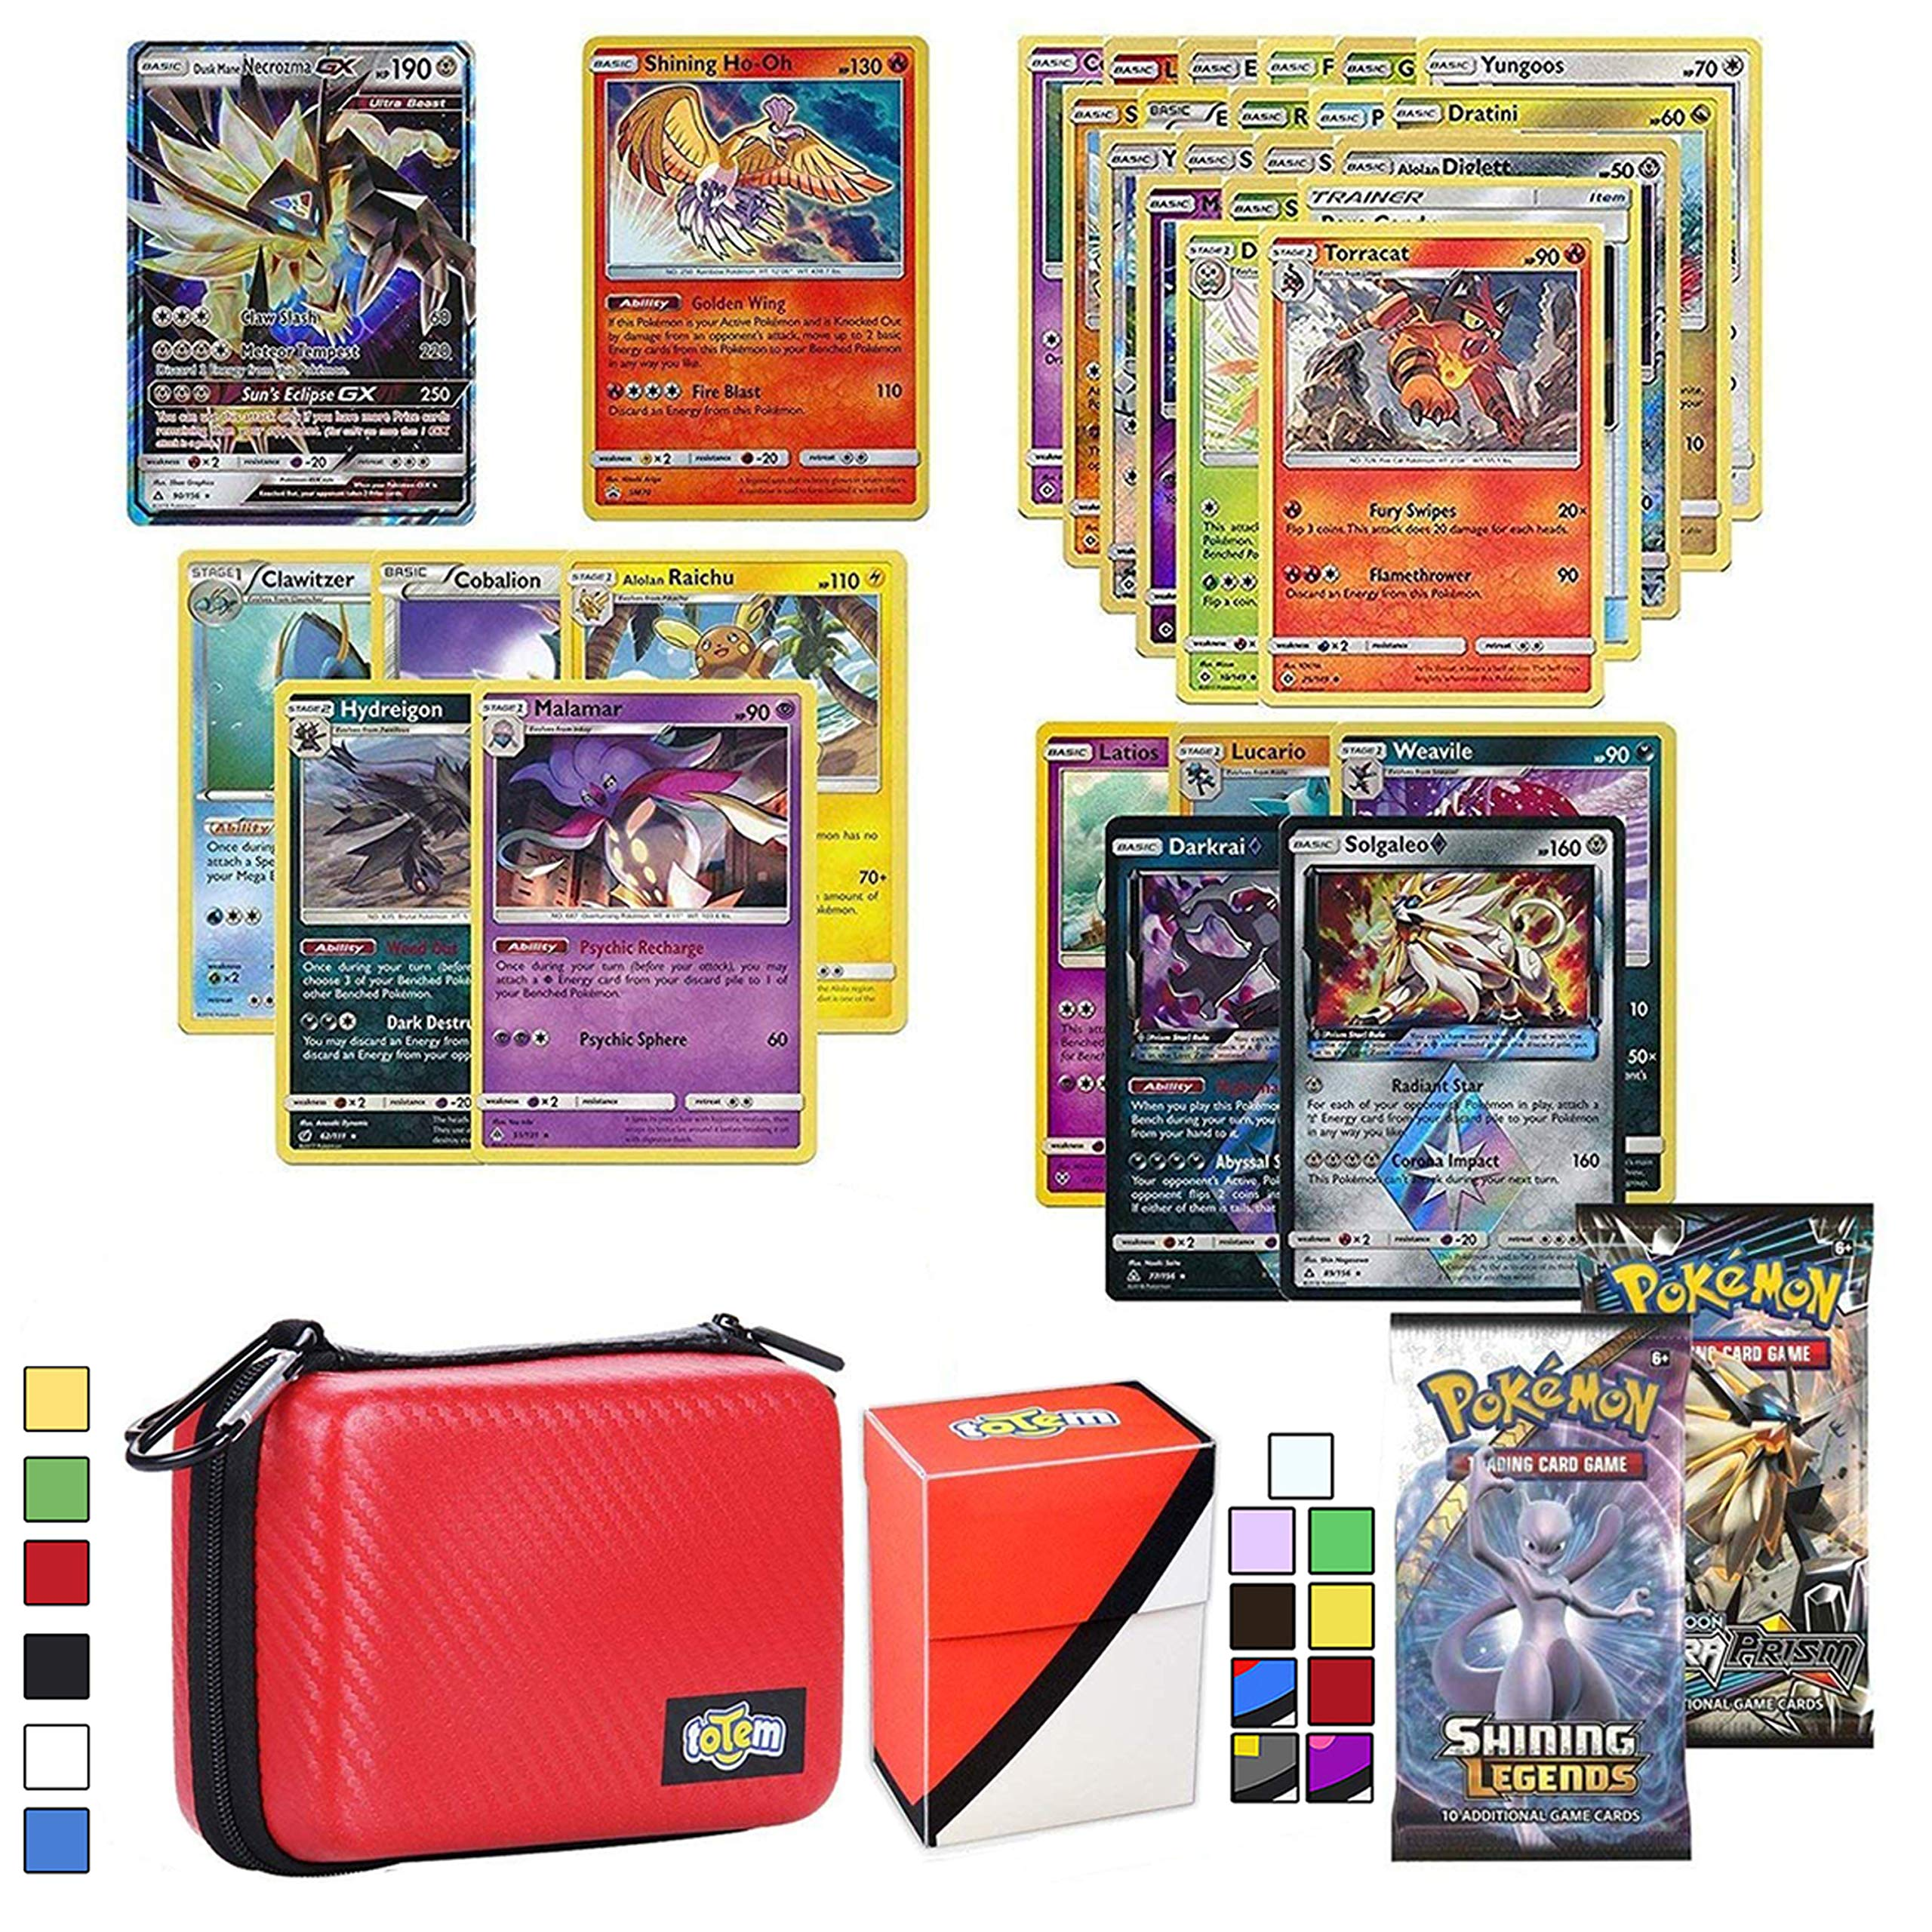 Totem World Pokemon Cards GX Lot with Card Carrying Case, 1 Pokemon GX Card Guaranteed, Plus 1 Pokemon Card Case, 2 Booster Pack, 5 Rares, 5 Holos, 20 Regular Pokemon Cards, and 1 Deck Box by Totem World